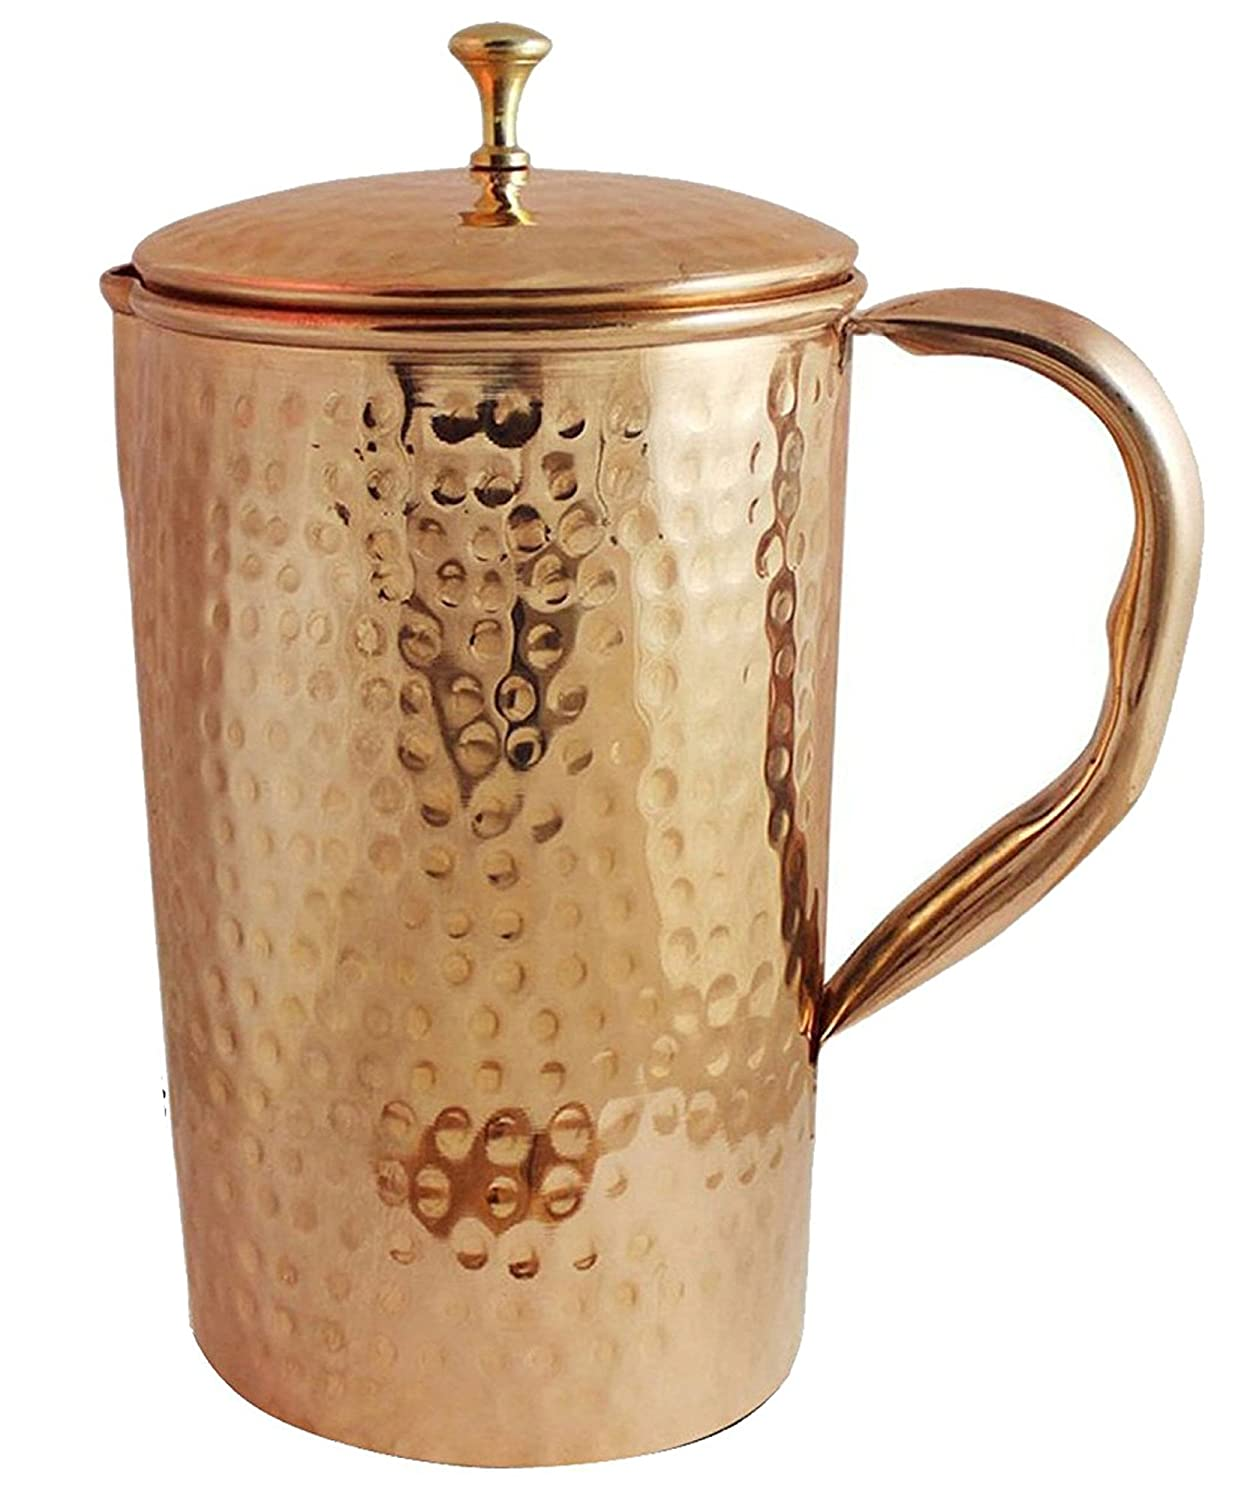 drinkware Pitcher with lid serving water jug storage copper good health benifit ayurveda carafe with handle indian treditional unbreakable home/hotel party SKAVIJ TCJ1